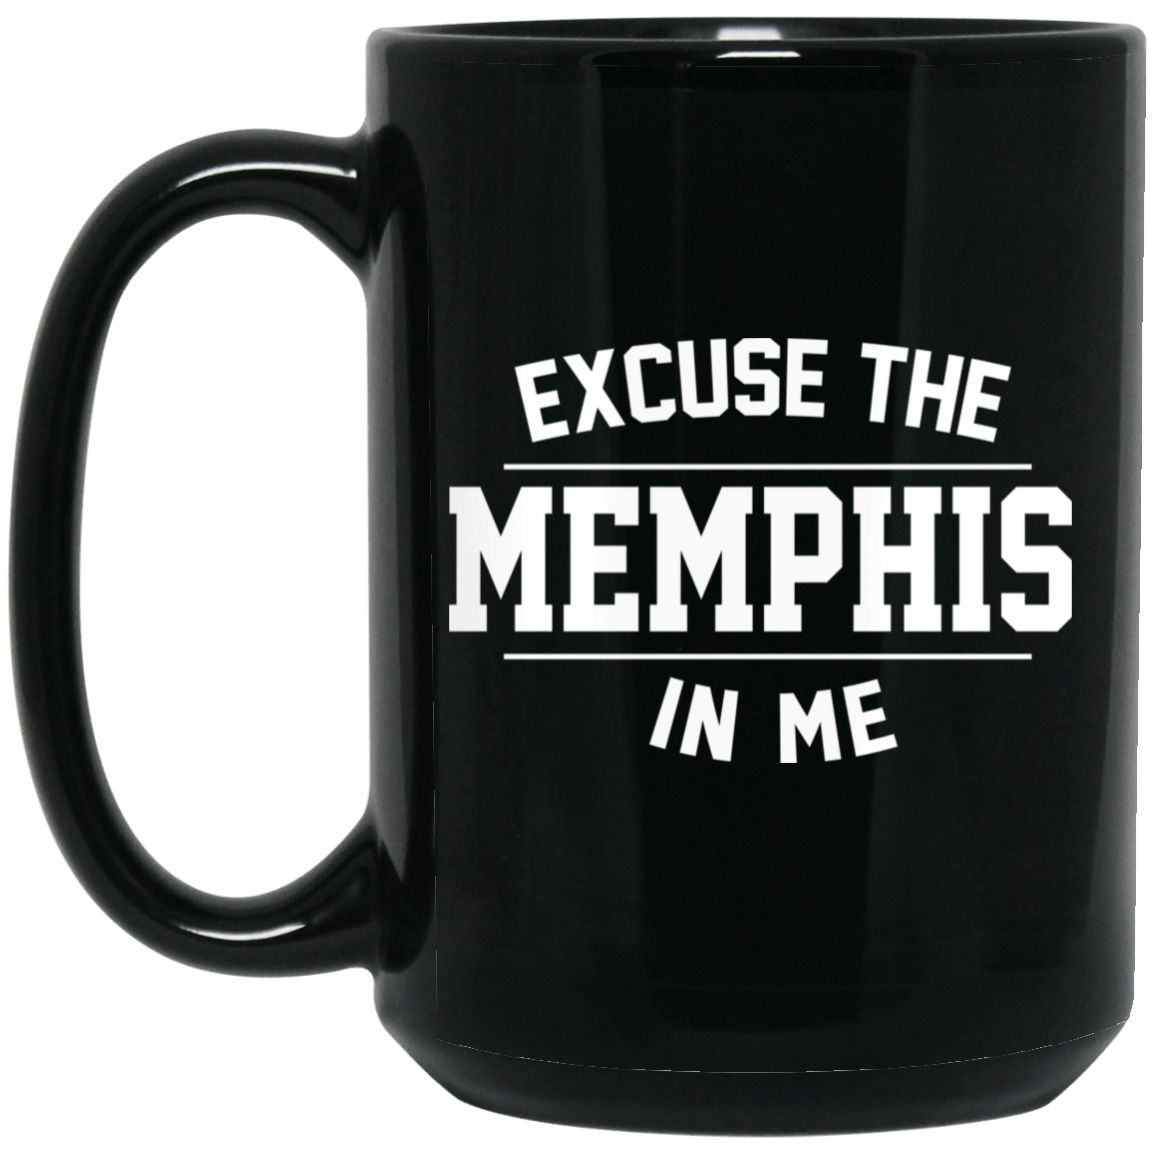 Excuse The Memphis In Me Mug 1066-10182-73548601-49311 - Tee Ript